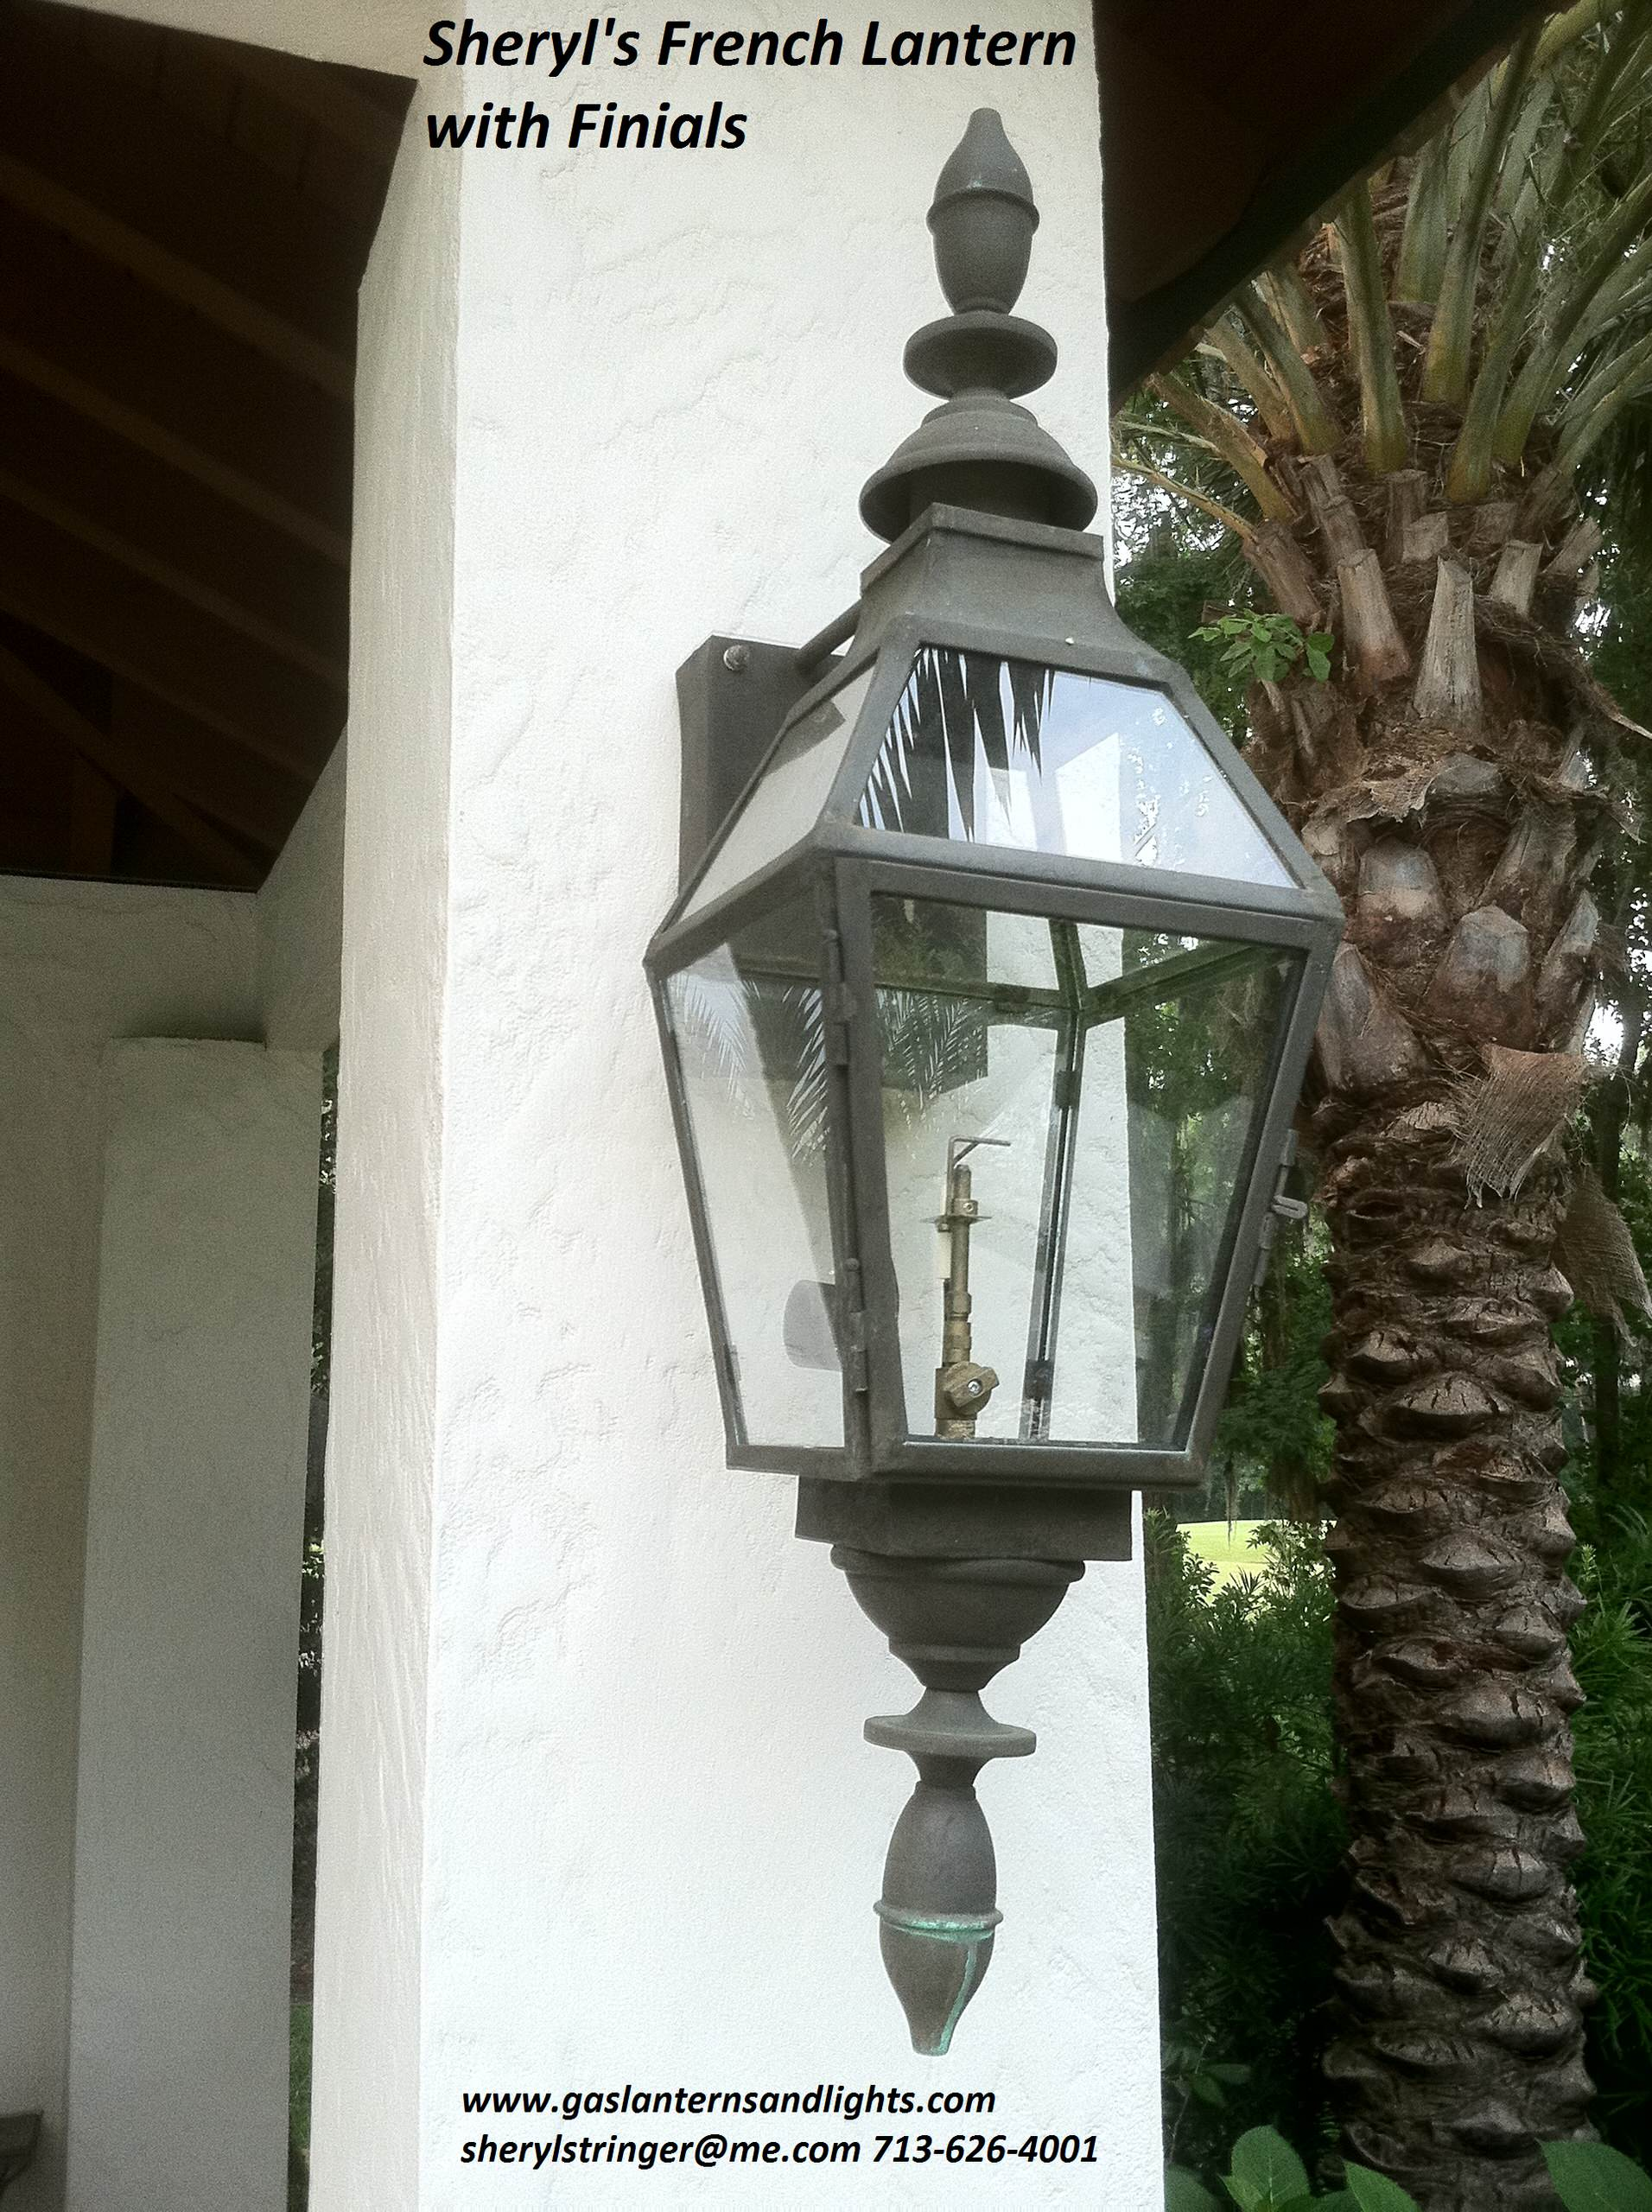 Sheryl's French Gas Lantern with Finials